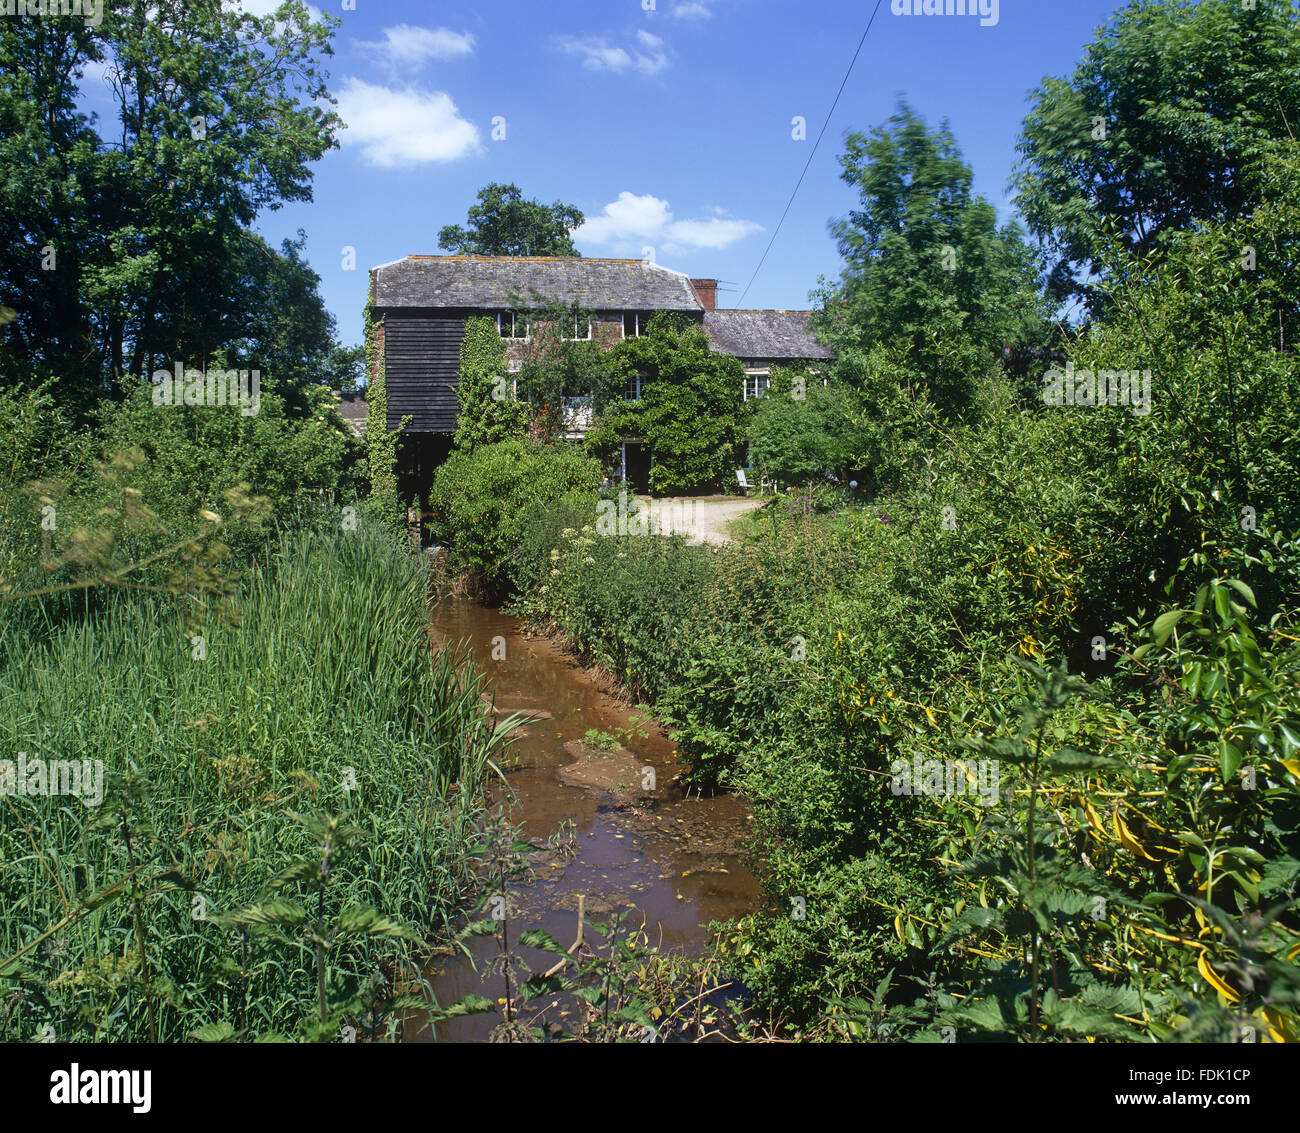 Clyston Mill dates back to the nineteenth century and is a fully working mill producing flour at Broadclyst, Devon. - Stock Image